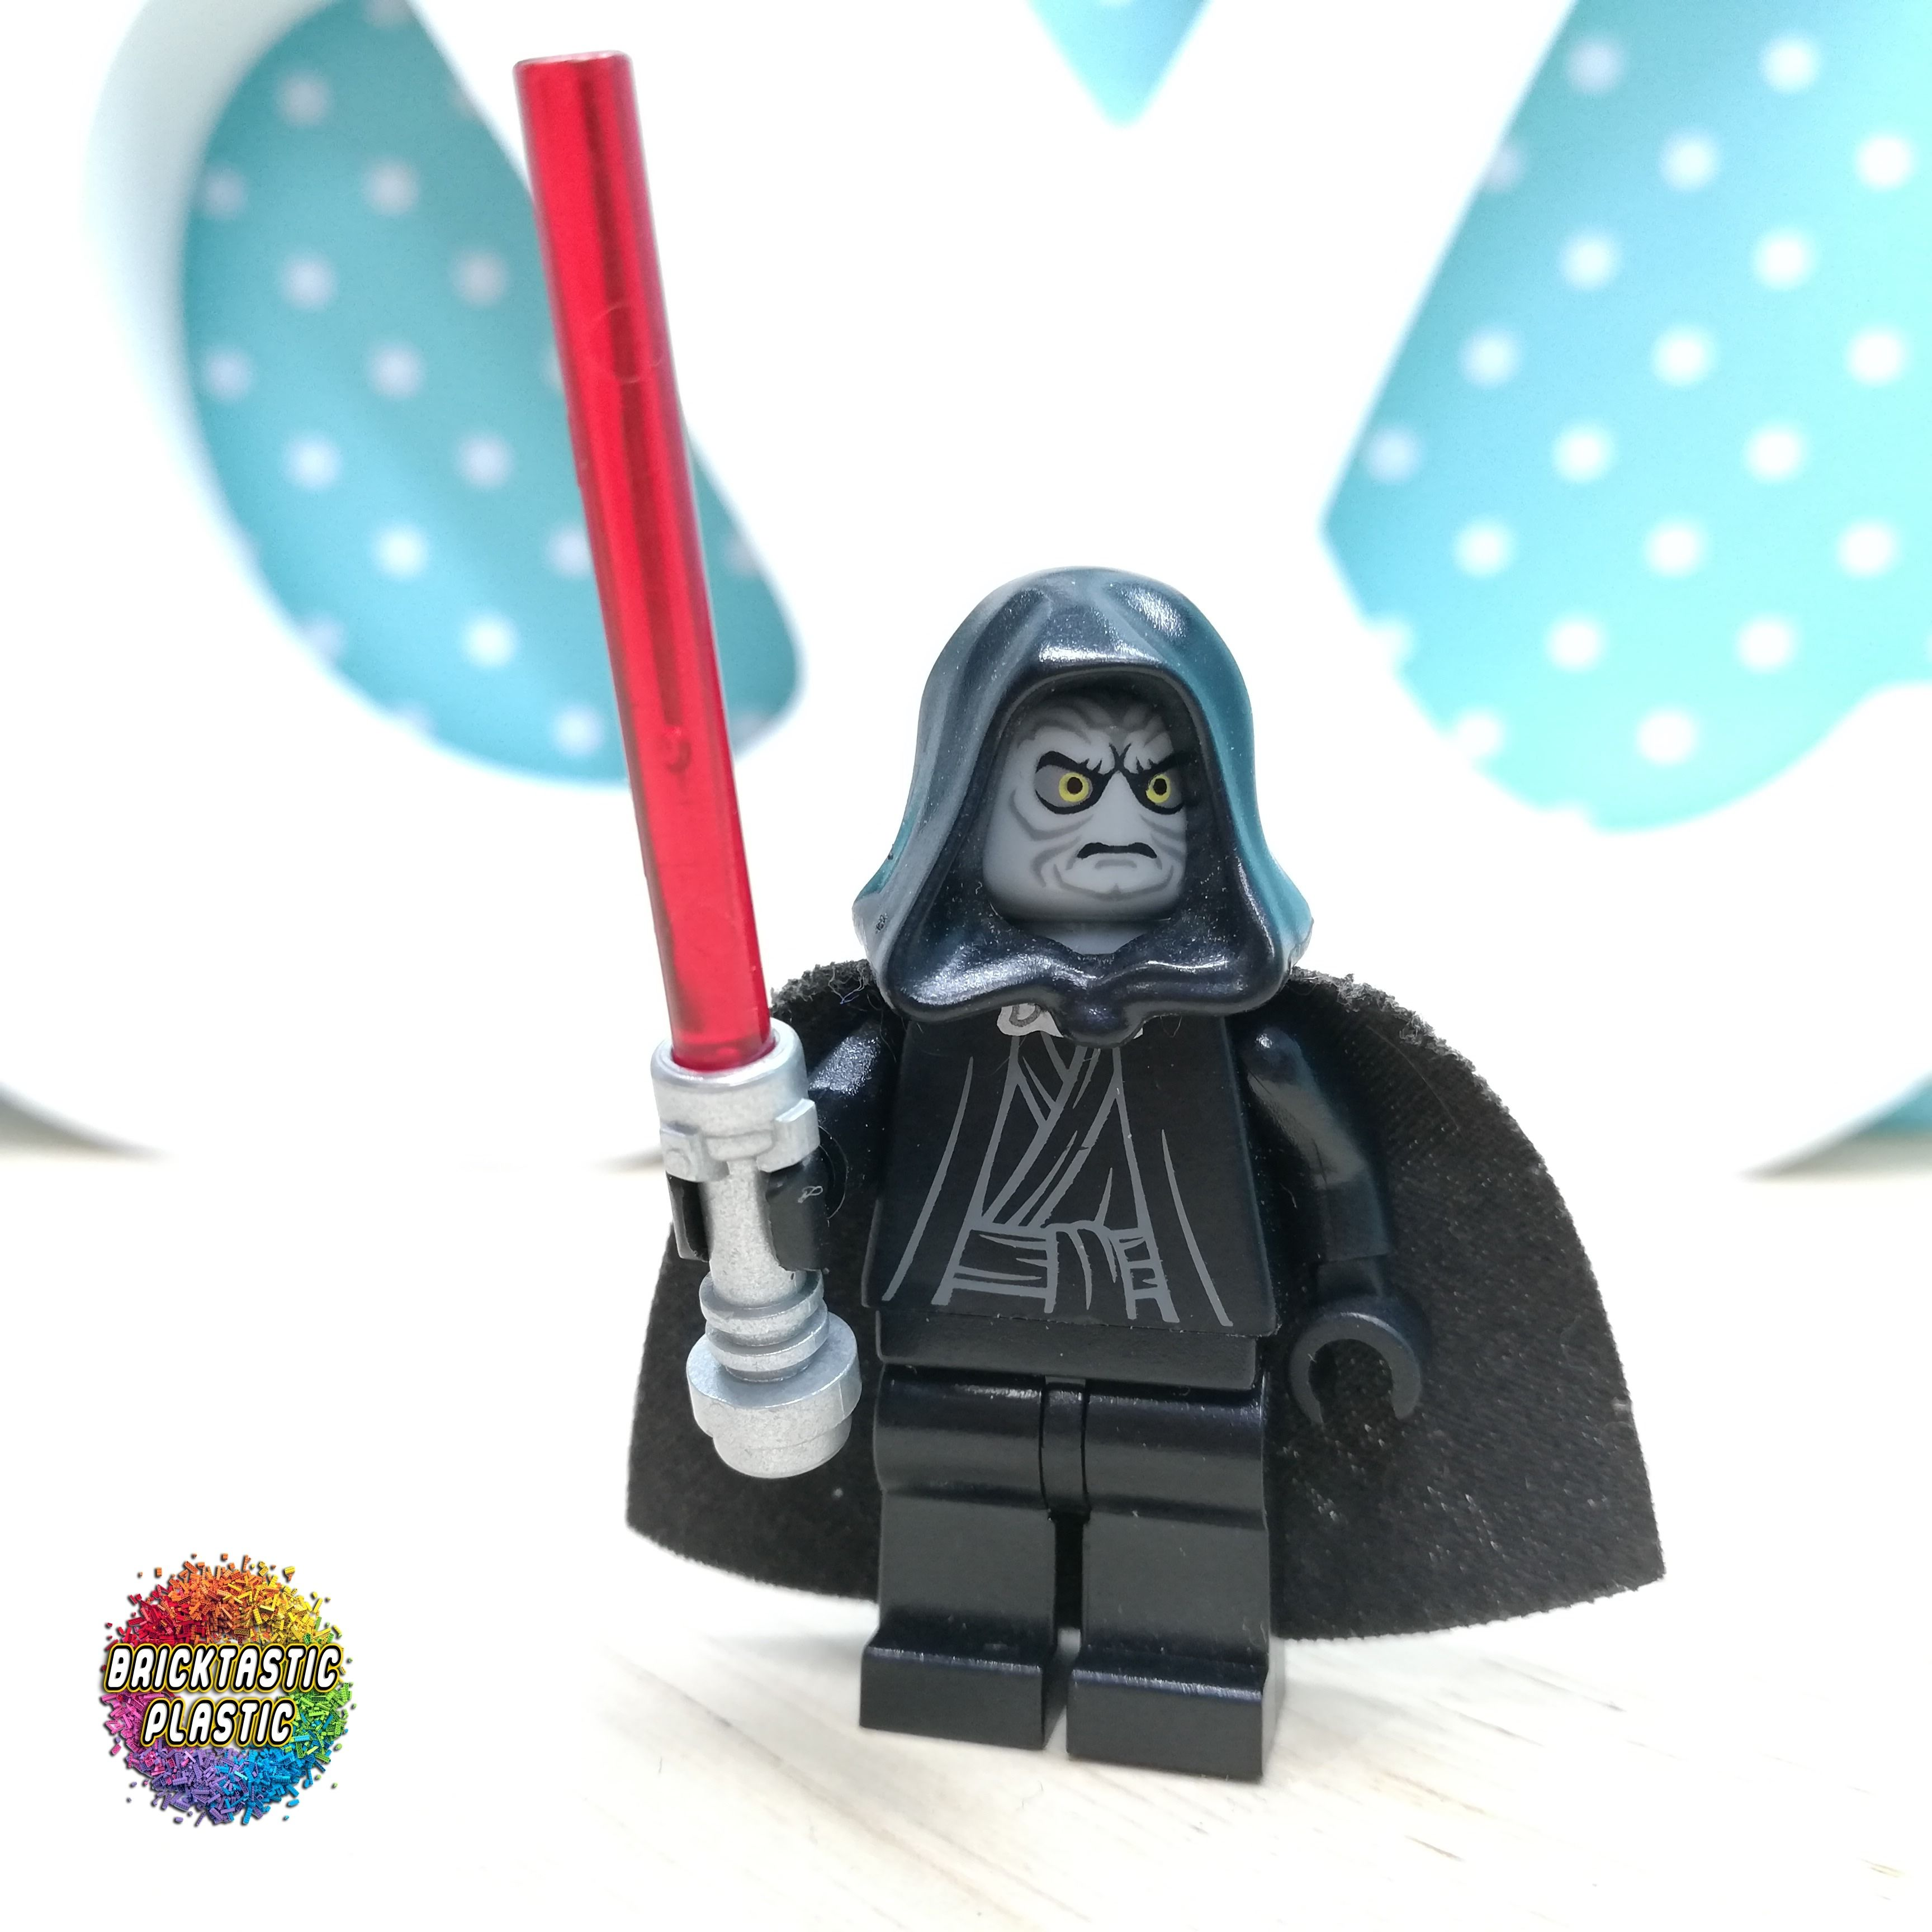 Lego Star Wars Emperor Palpatine Minifigures 8096 Like New Lego Star Wars Mini Figures Lego